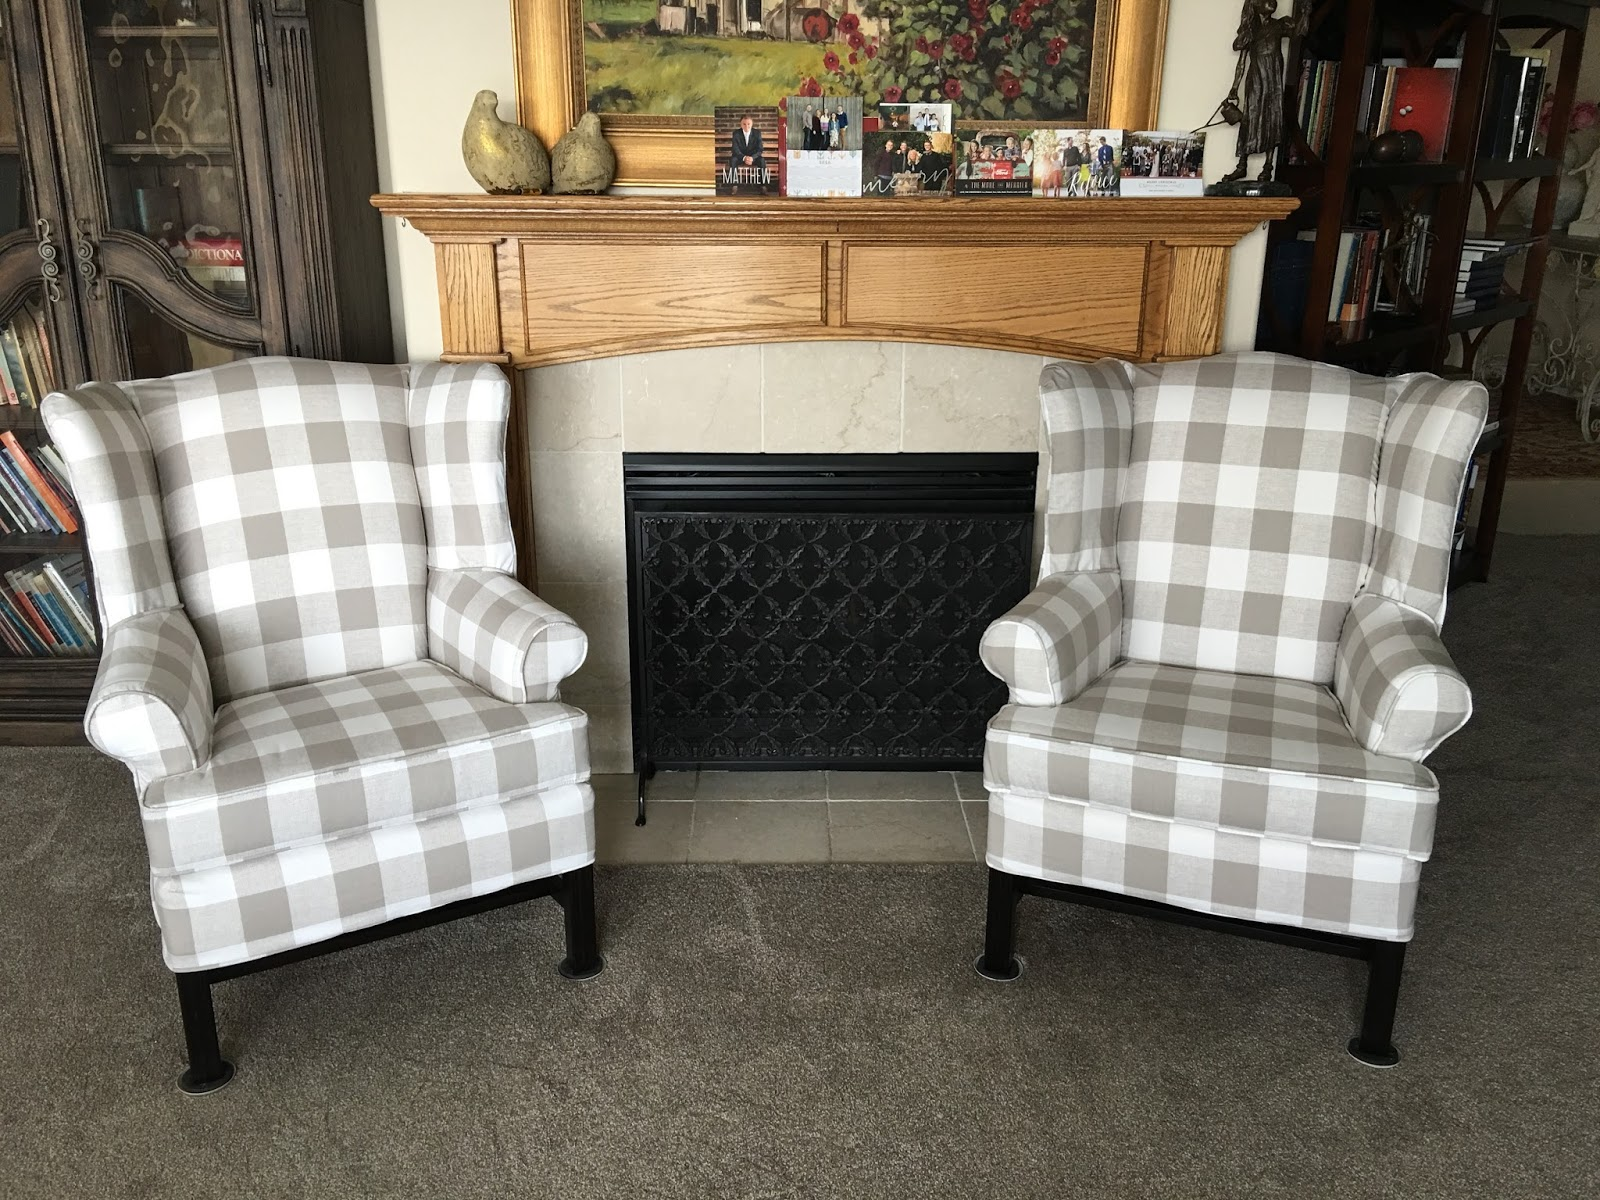 Charmant This Buffalo Check Is Amaze Balls!! It Can Practically Go With ANYTHING!  While I Was There Look At Other Furniture For Her I Saw The Chairs ...